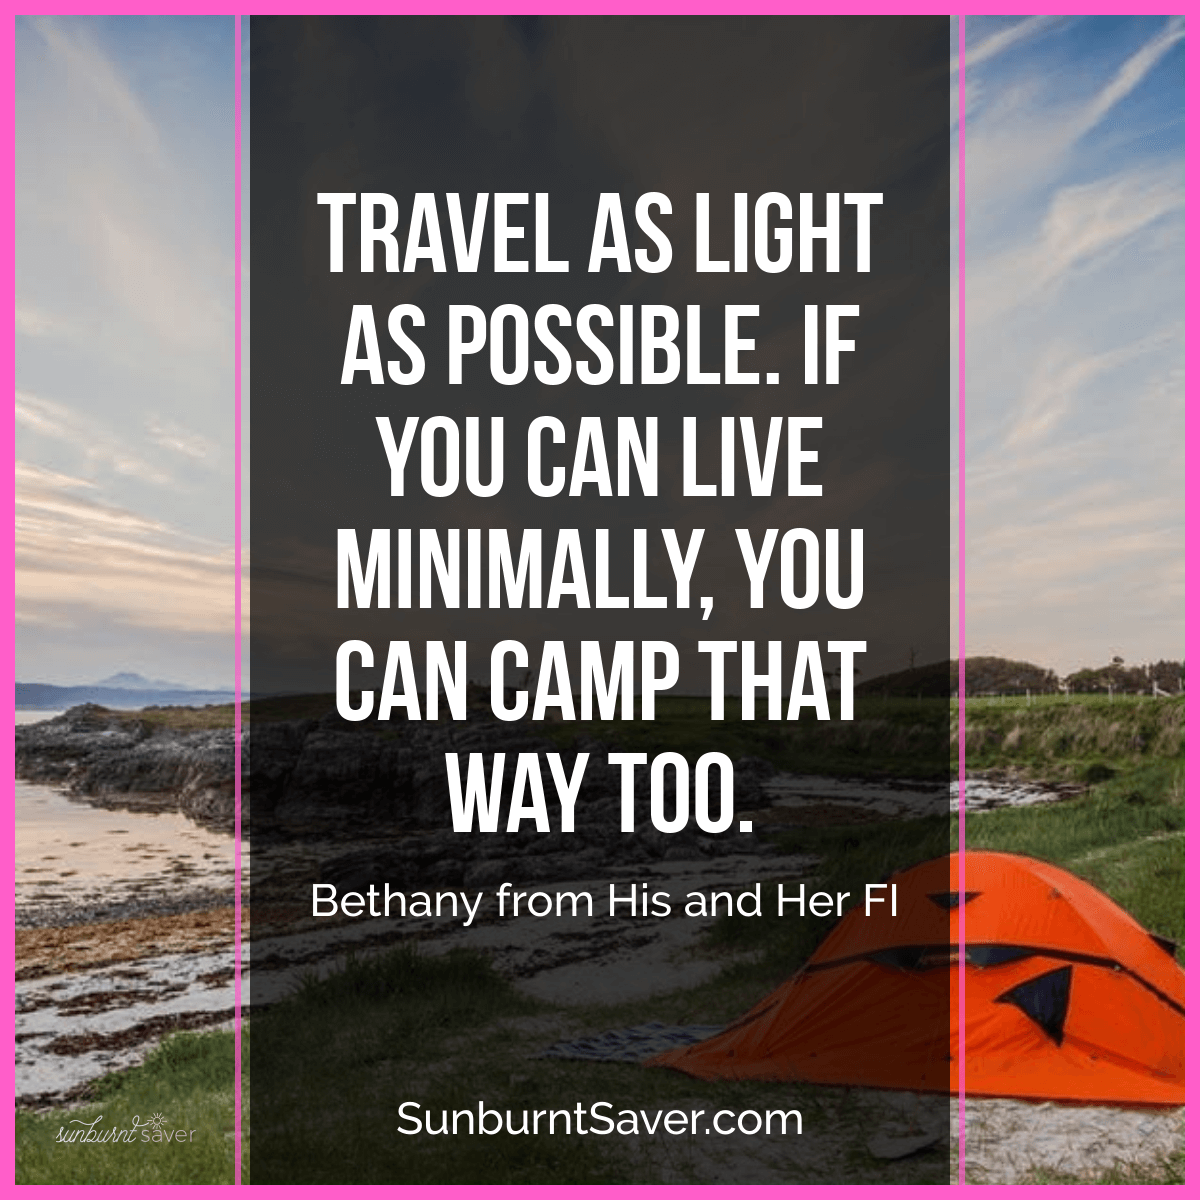 Do you wish you could travel, but don't have the money for flights, hotel stays or fancy dinners out? While you may not be able to travel to Hawaii, there are ways you can still travel, get out and experience something new - and not break the bank. What is that? Frugal camping!